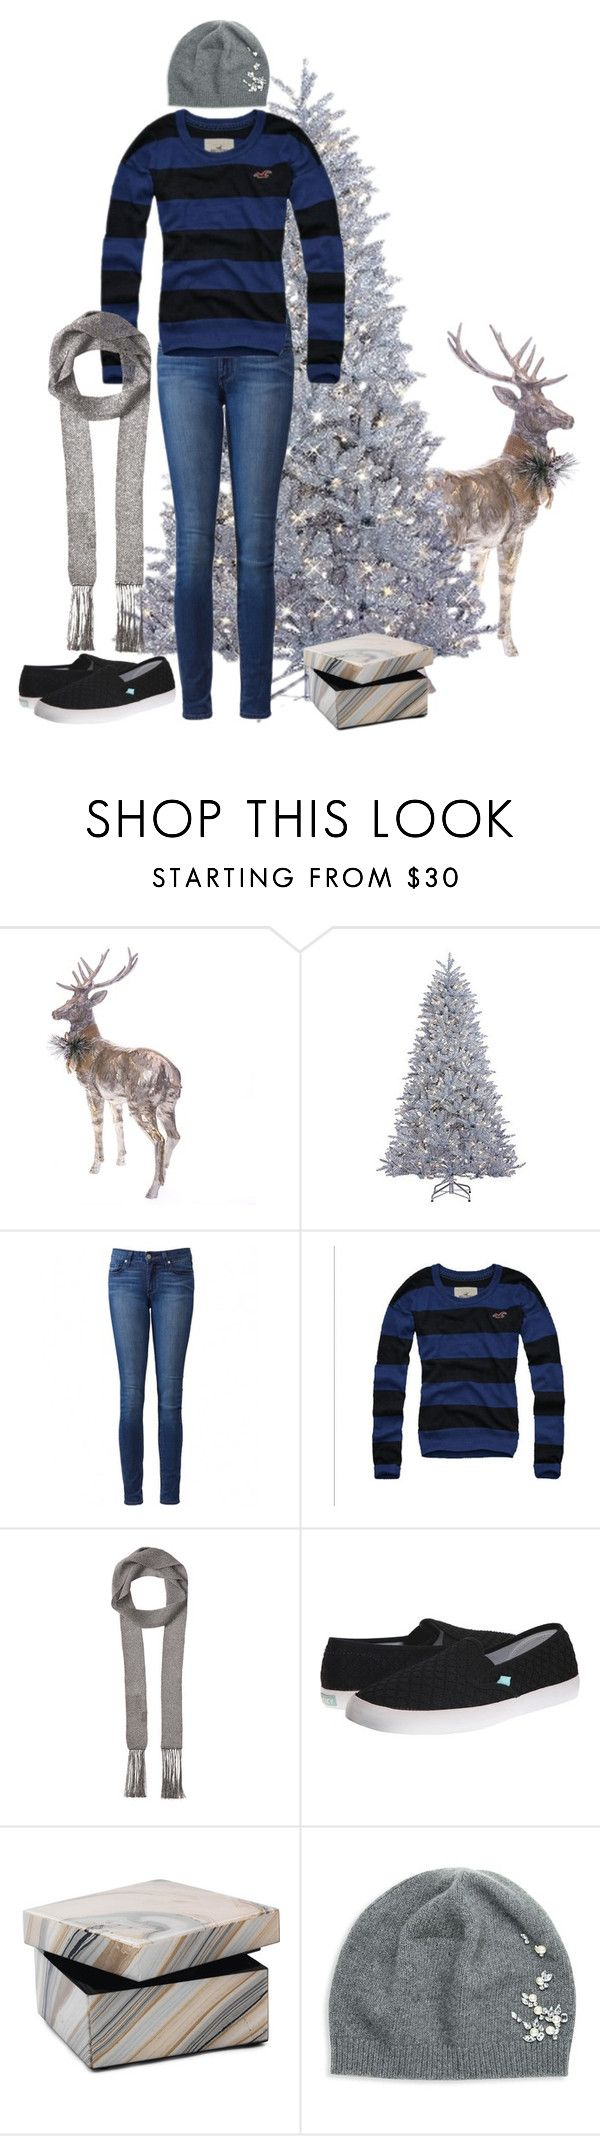 """""""A Touch of Silver"""" by underwater-city ❤ liked on Polyvore featuring Sterling, Paige Denim, Hollister Co., Missoni, Roxy, Mitchell Gold + Bob Williams and Portolano"""